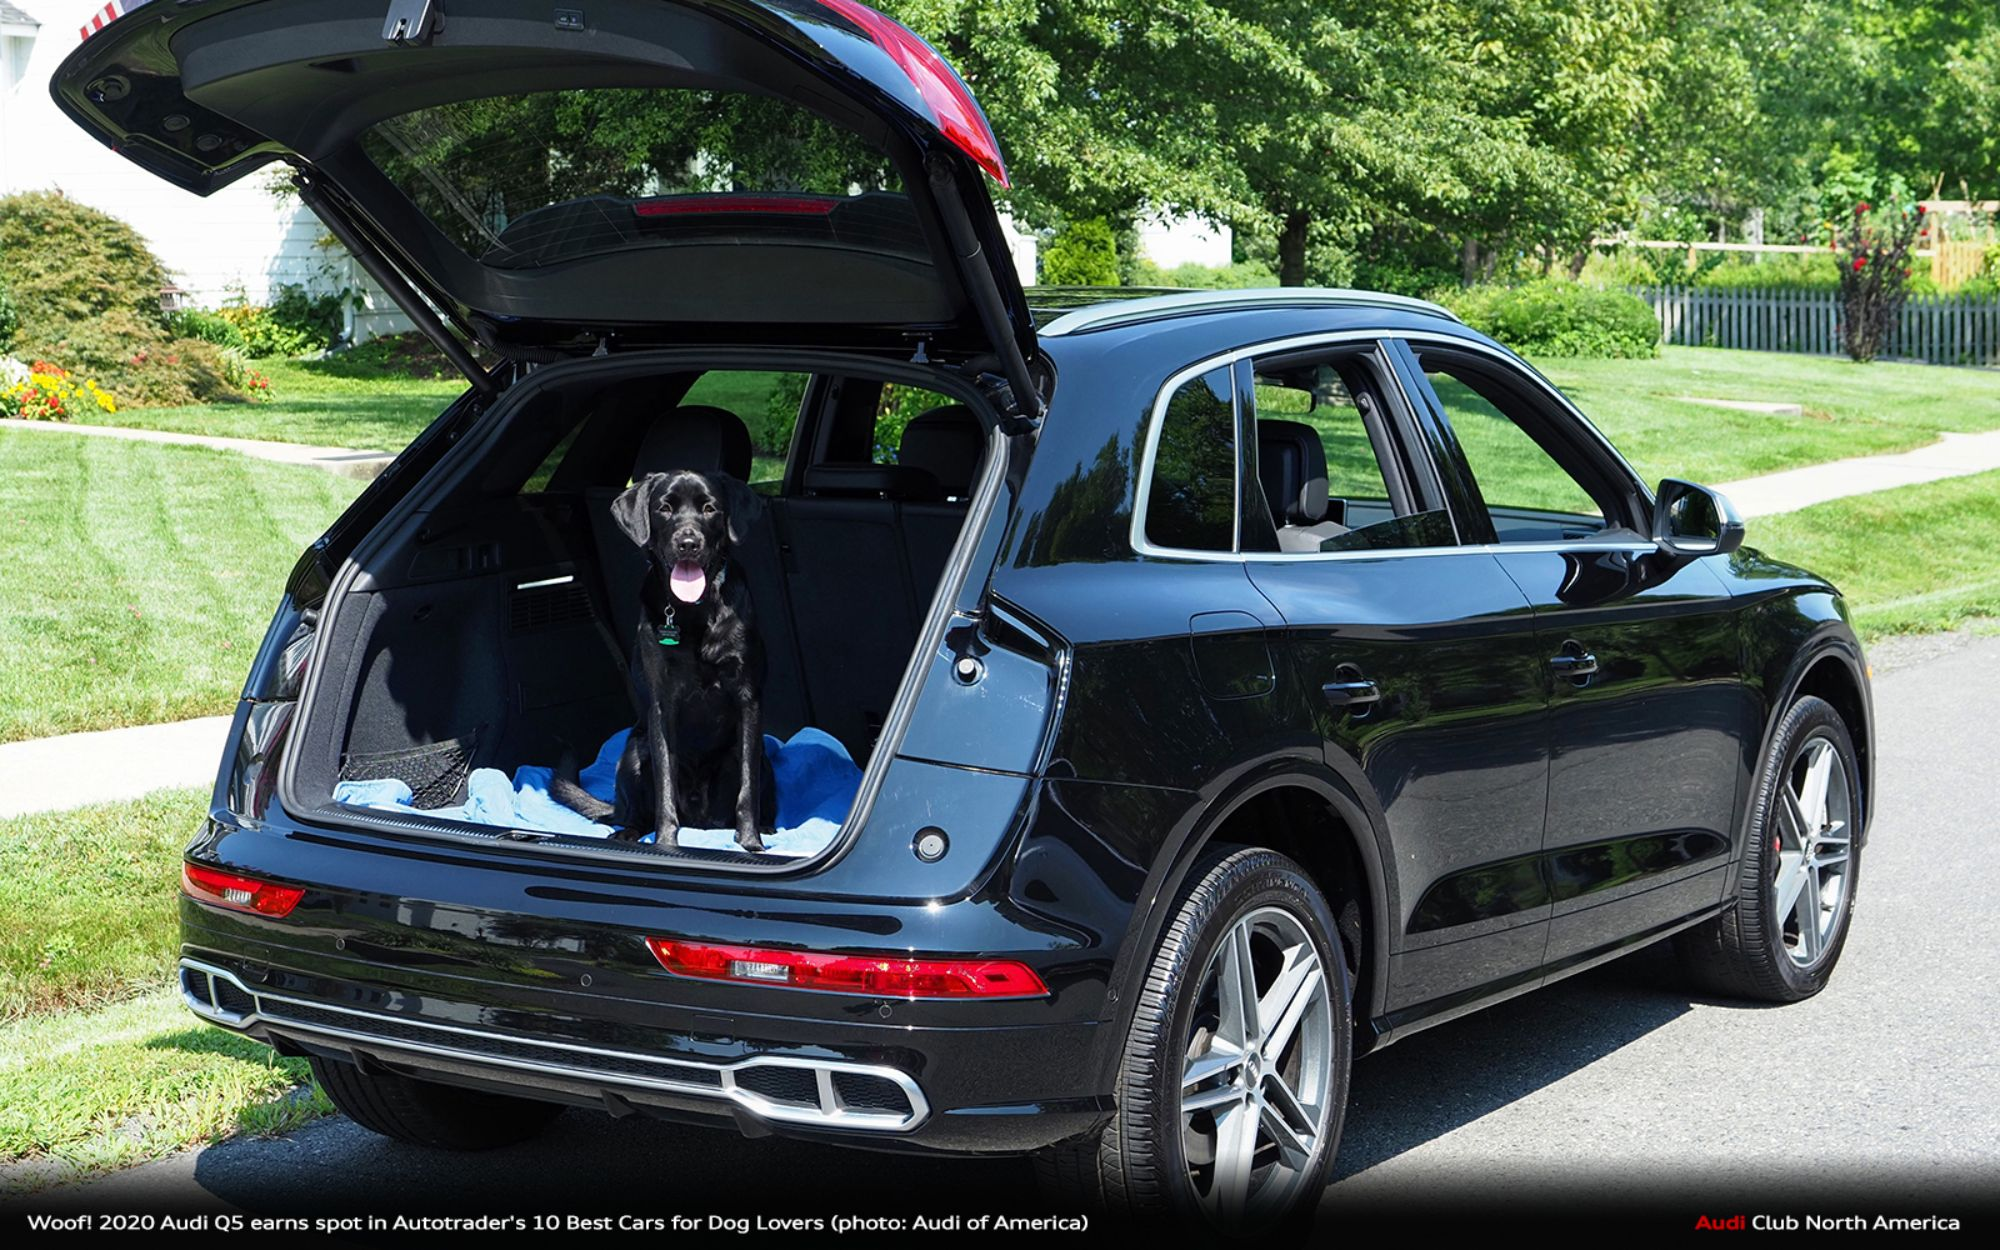 Woof! 2020 Audi Q5 Earns Spot in Autotrader's 10 Best Cars for Dog Lovers